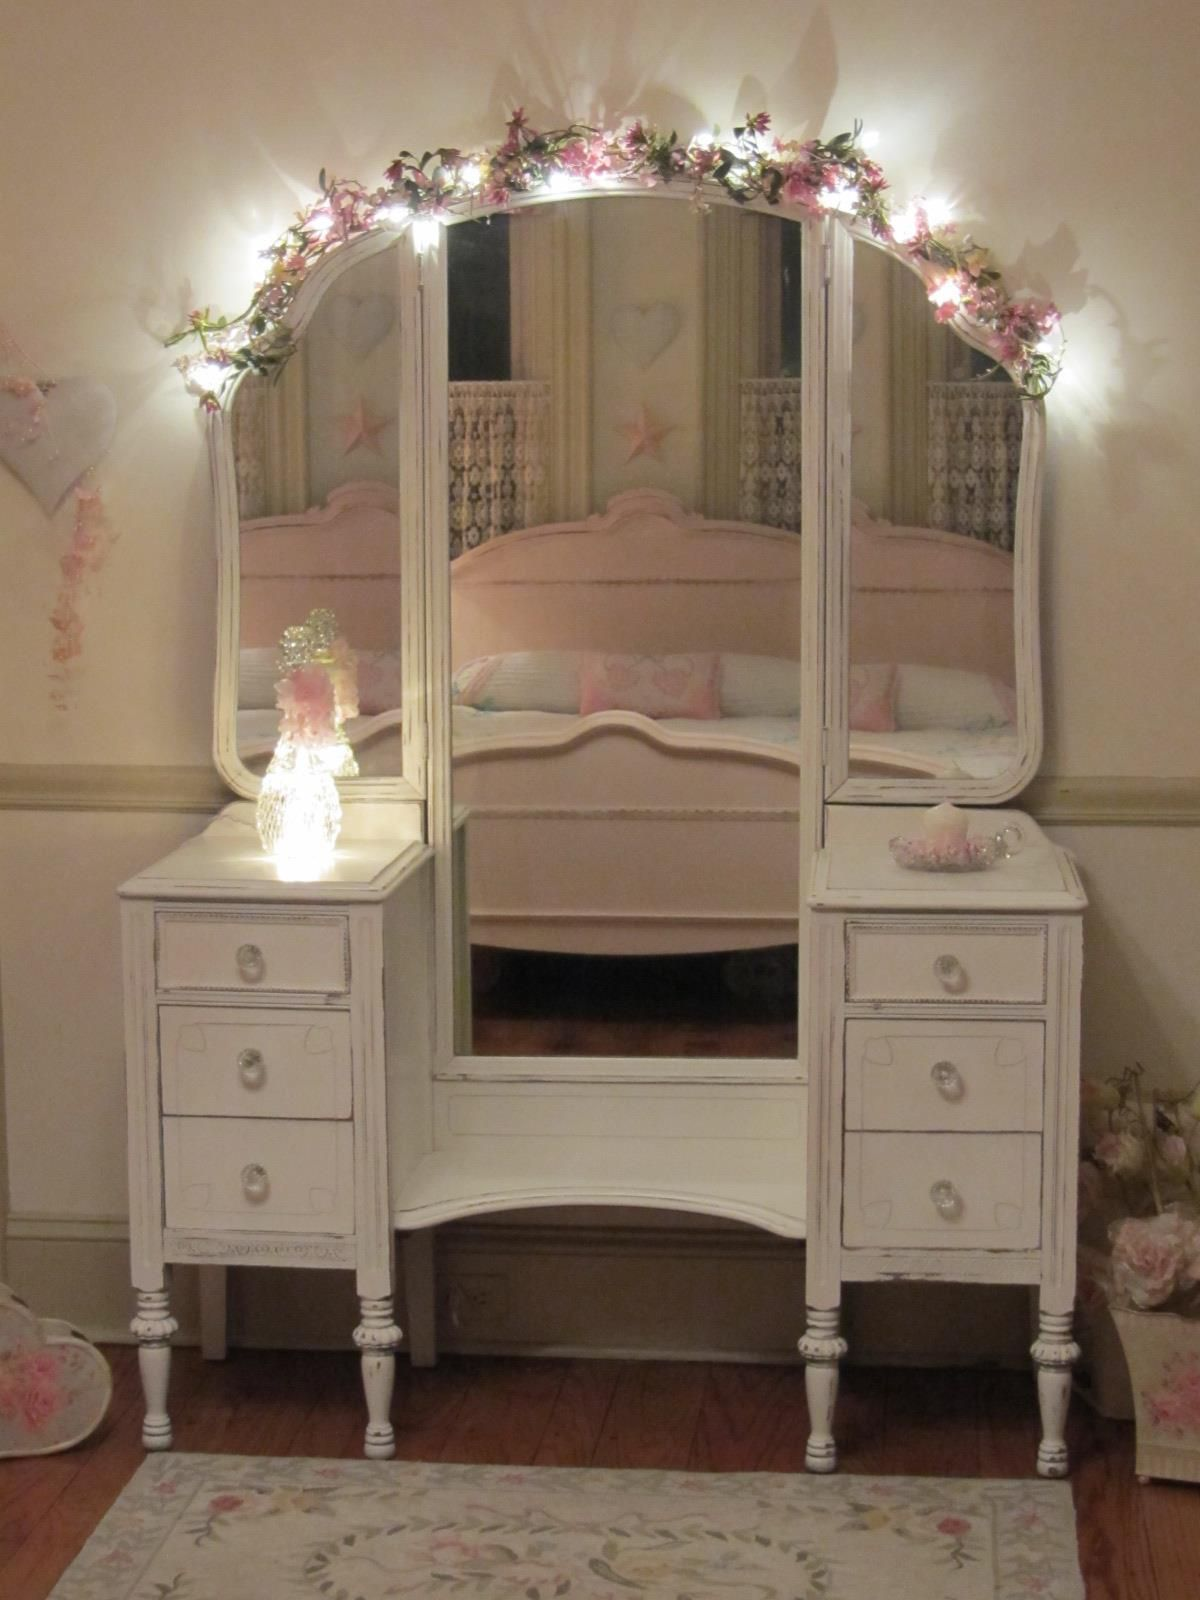 lights and swag over mirror home decor shabby chic furniture rh pinterest com